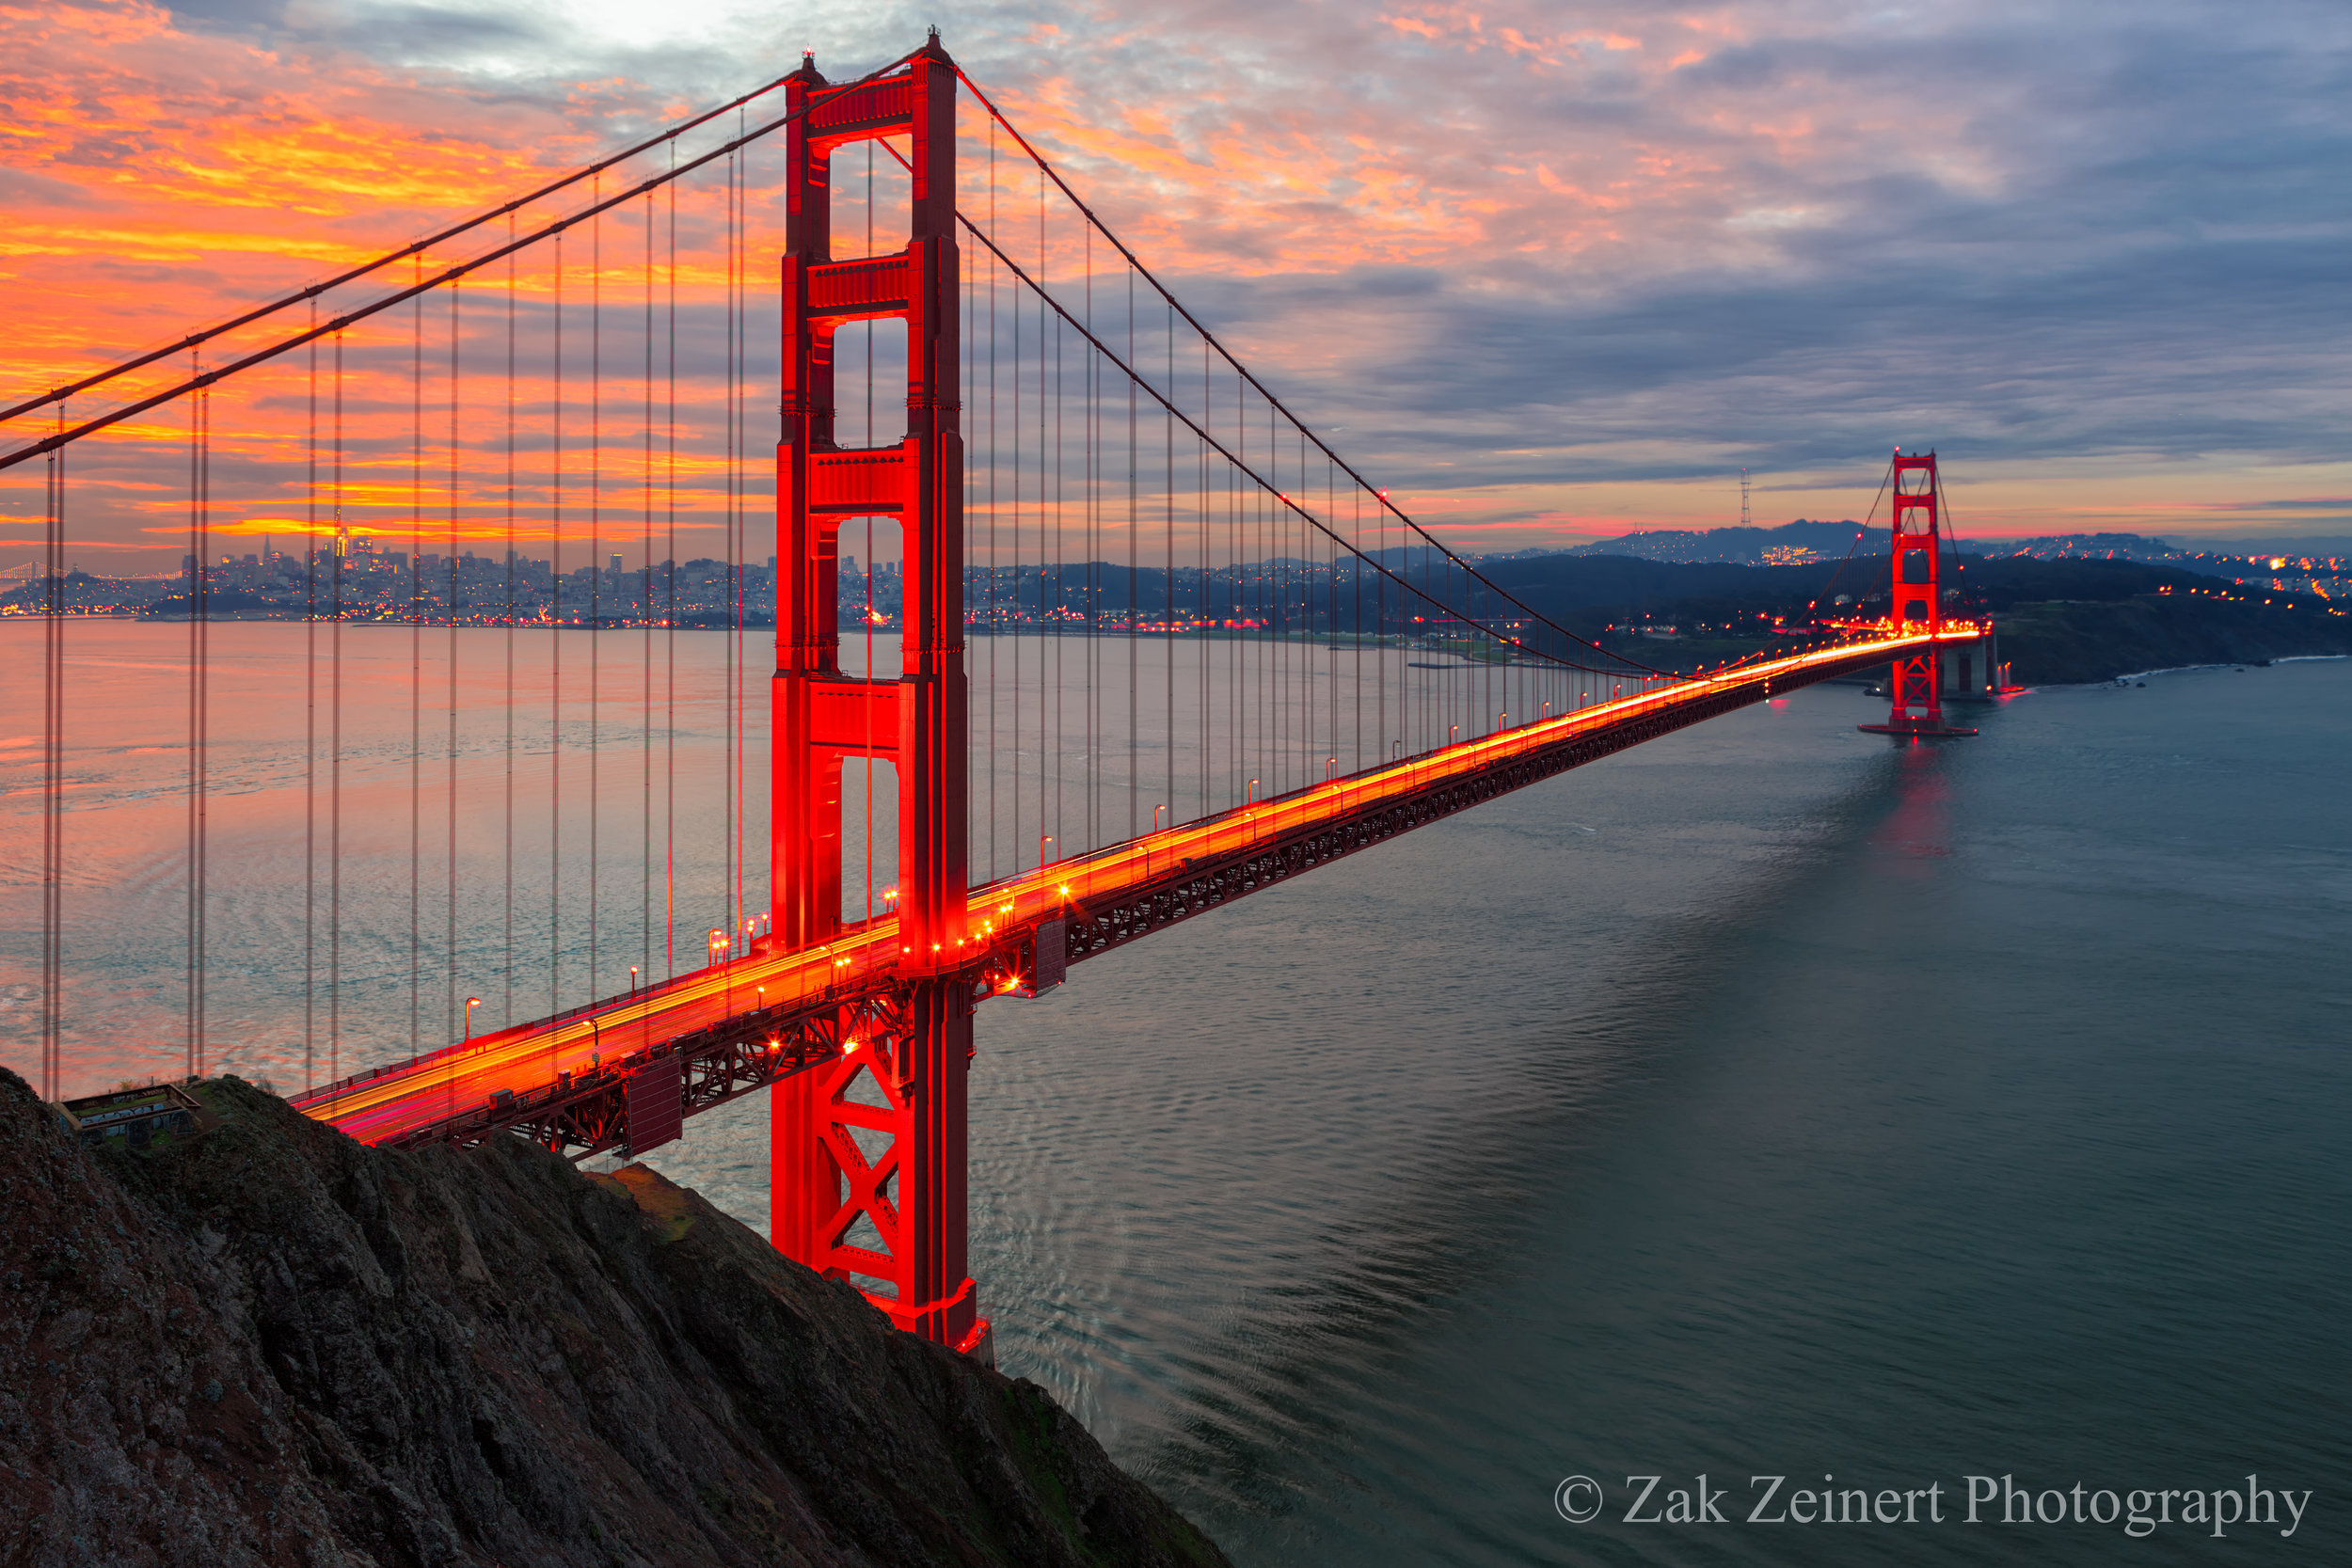 The Golden Gate Bridge at sunrise as seen from Battery Spencer Overlook